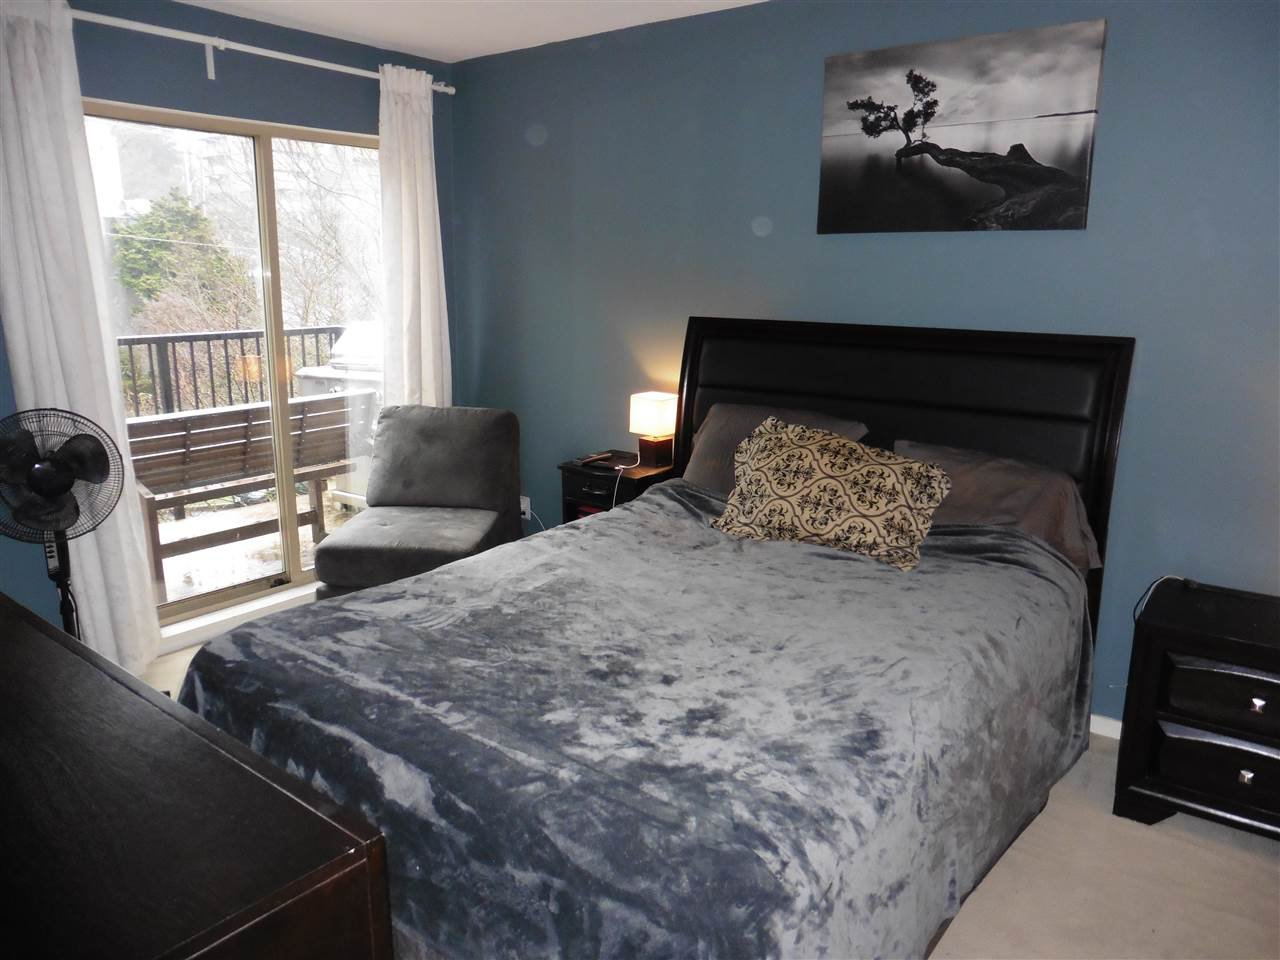 """Photo 10: Photos: 506 210 ELEVENTH Street in New Westminster: Uptown NW Condo for sale in """"DISCOVERY REACH"""" : MLS®# R2434040"""